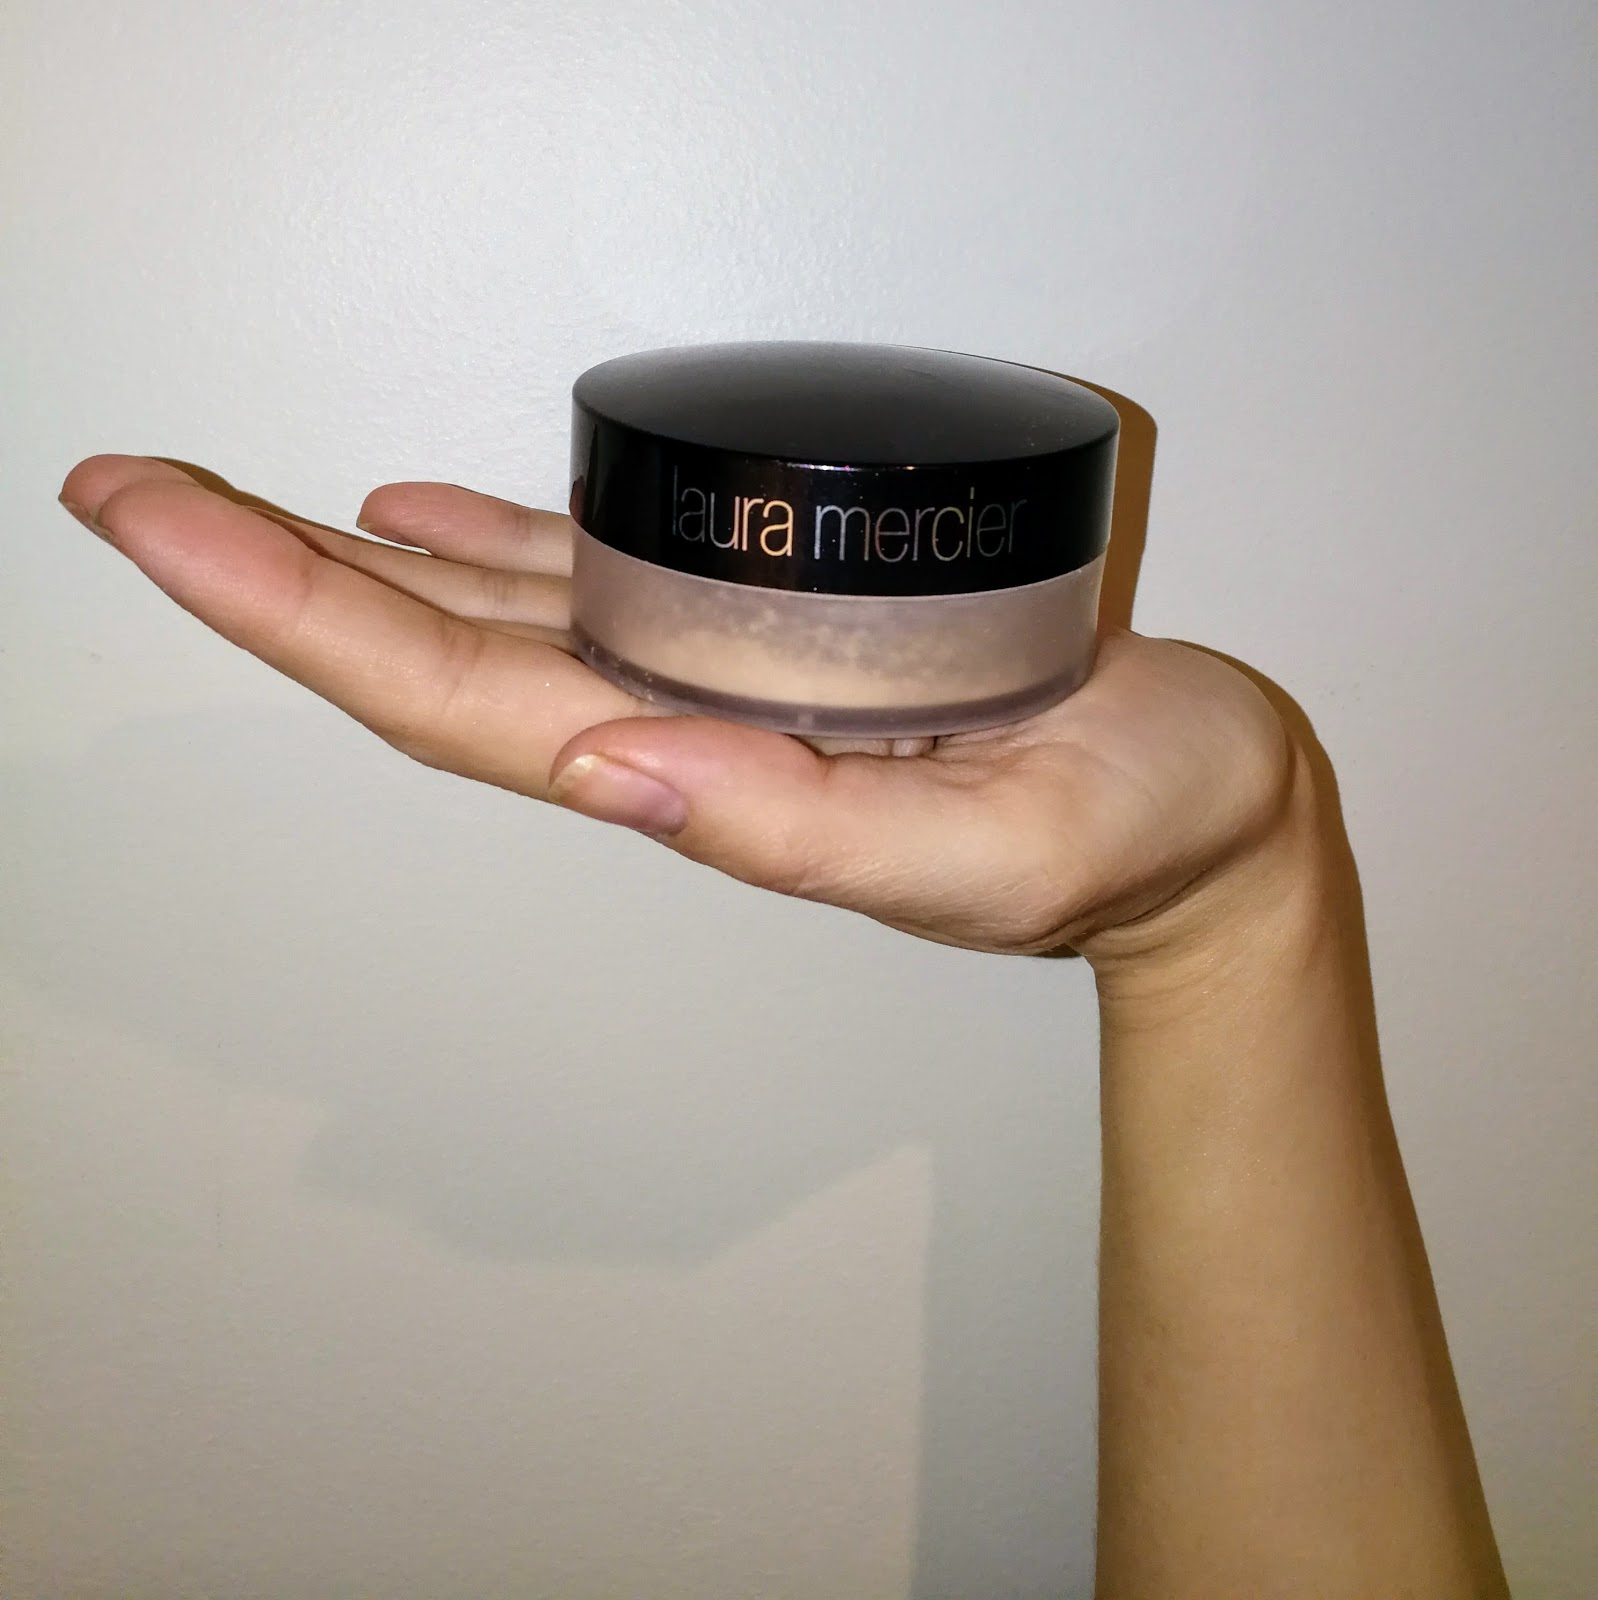 Laura Mercier Mineral Powder, Tender Rose